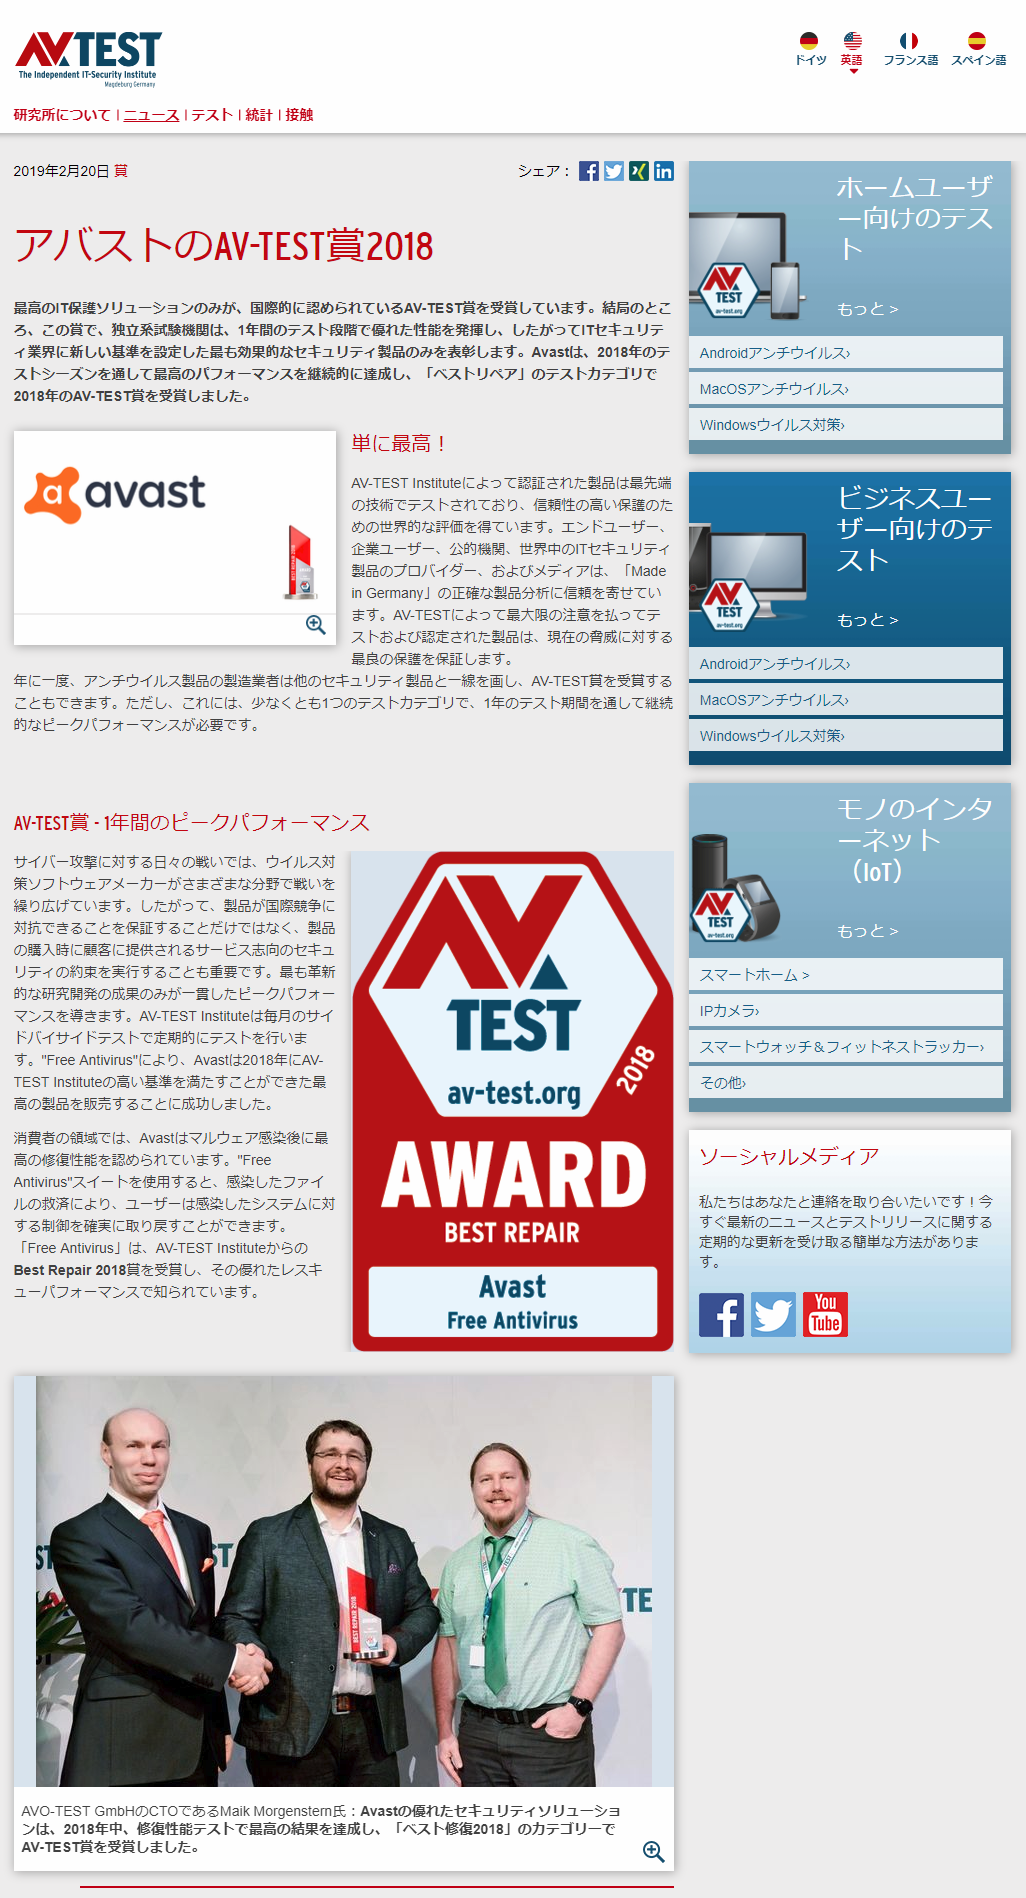 AV-TEST Award 2018 for Avast